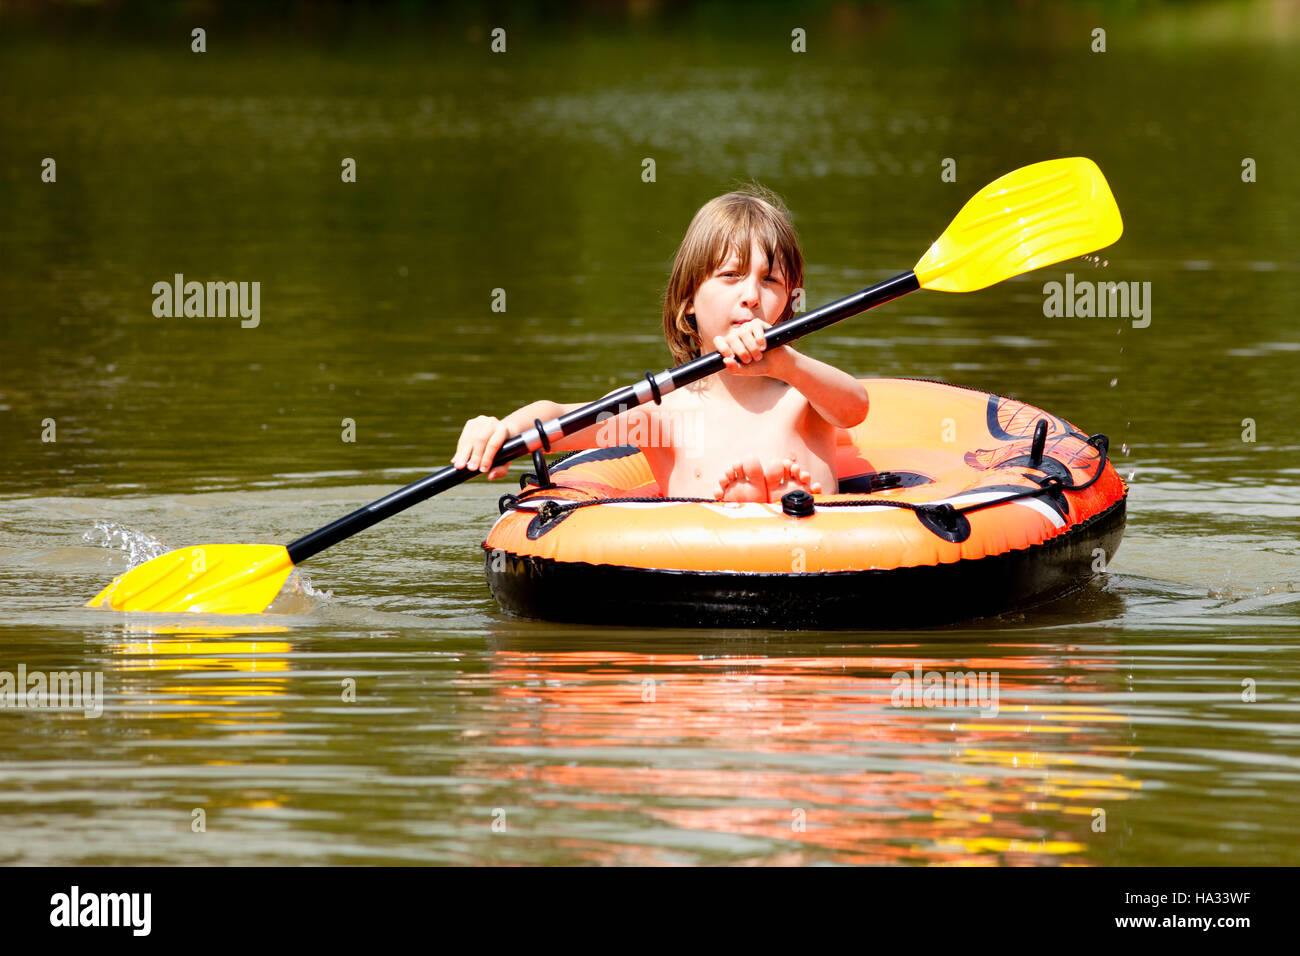 Boy with Blond Hair Paddles Inflatable Rubber Boat - Stock Image